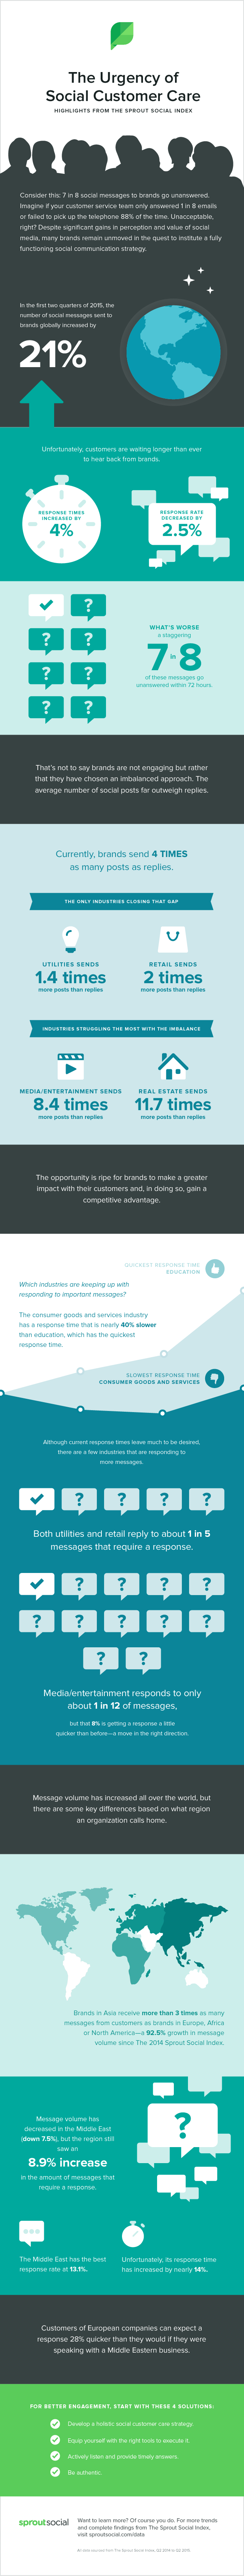 The Urgency Of Social Media Customer Care: Highlights From The 2015 Sprout Social Index - #infographic